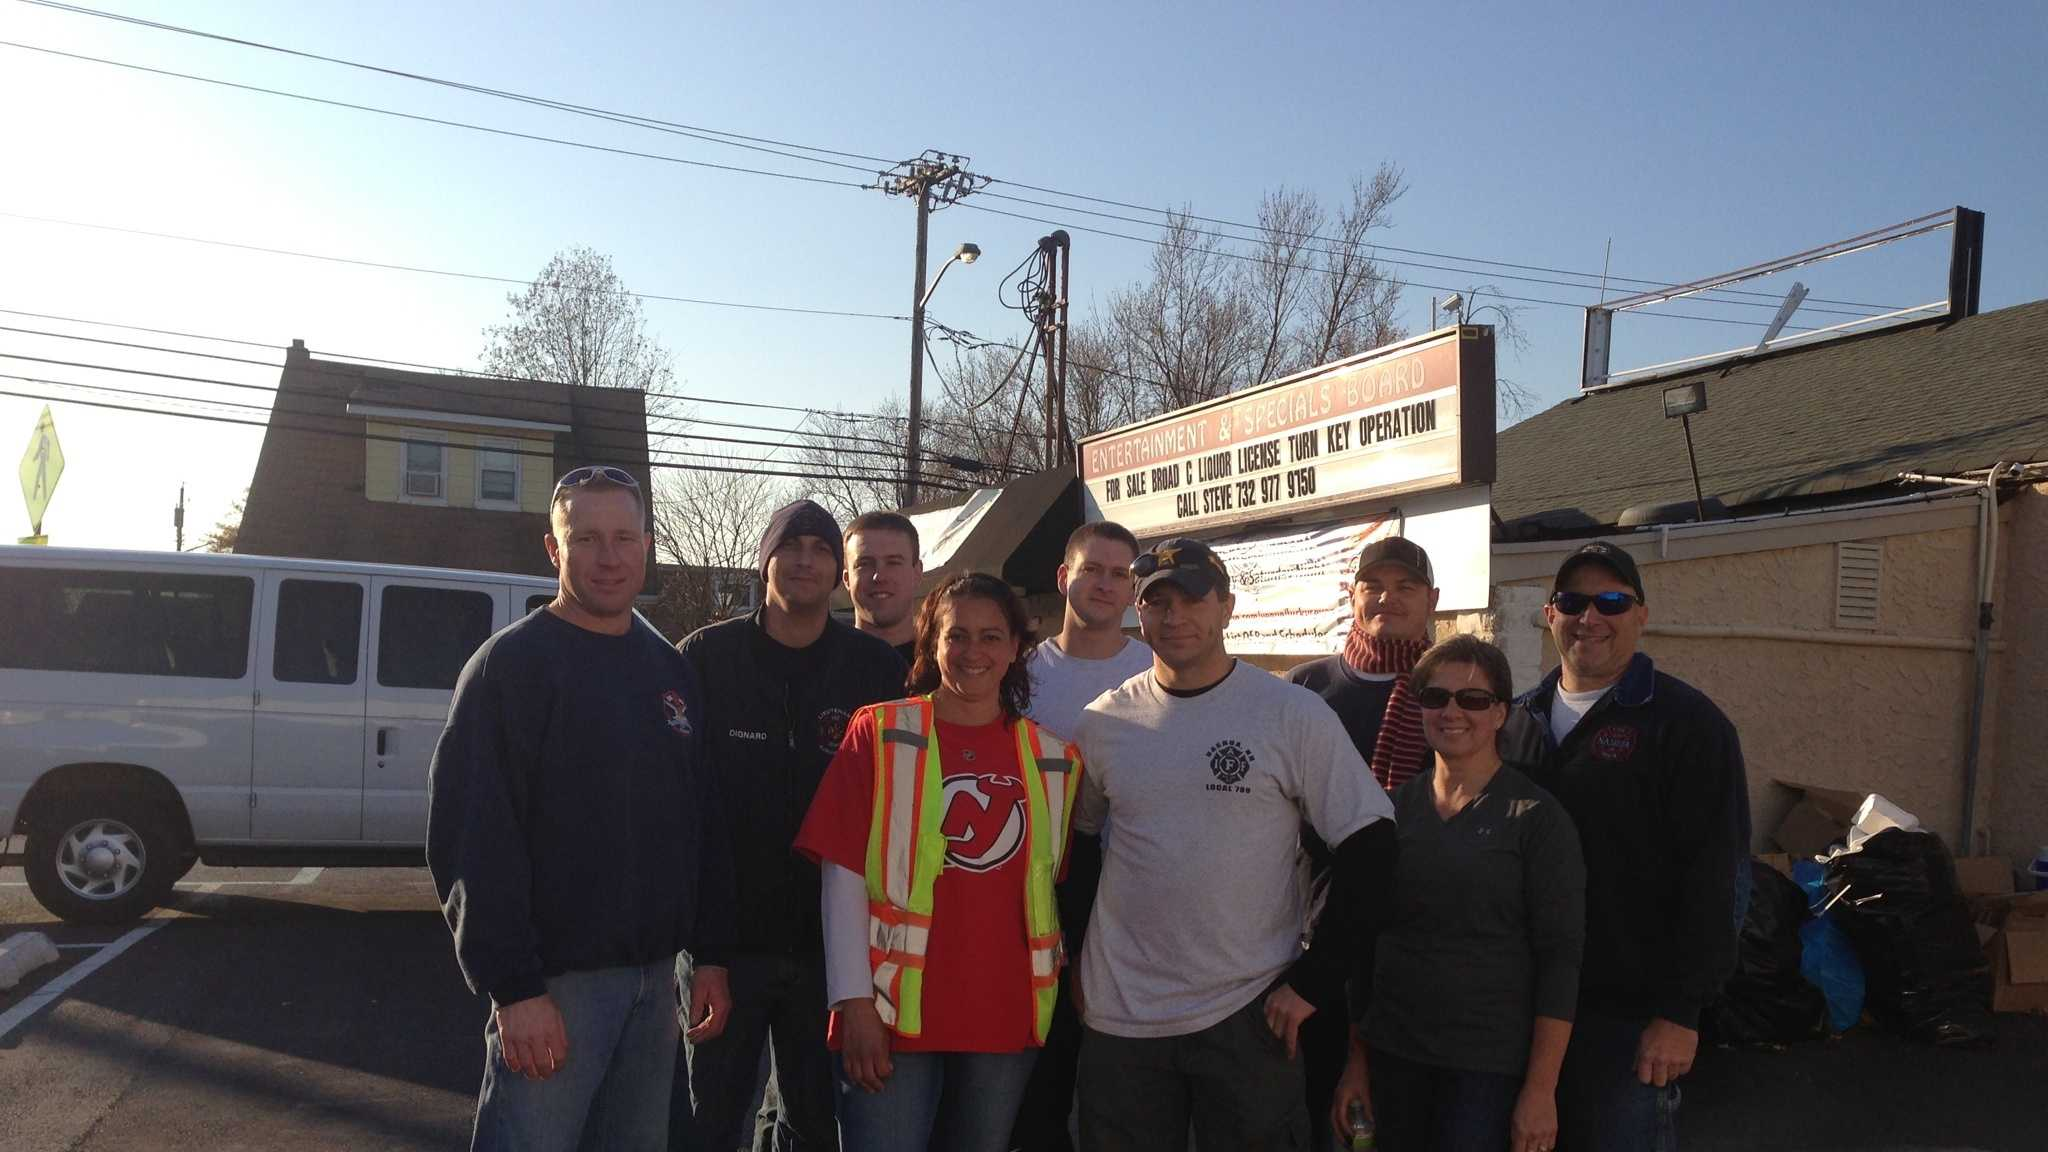 Firefighters arrived in Union Beach, N.J. Saturday to deliver supplies for Hurricane Sandy victims.